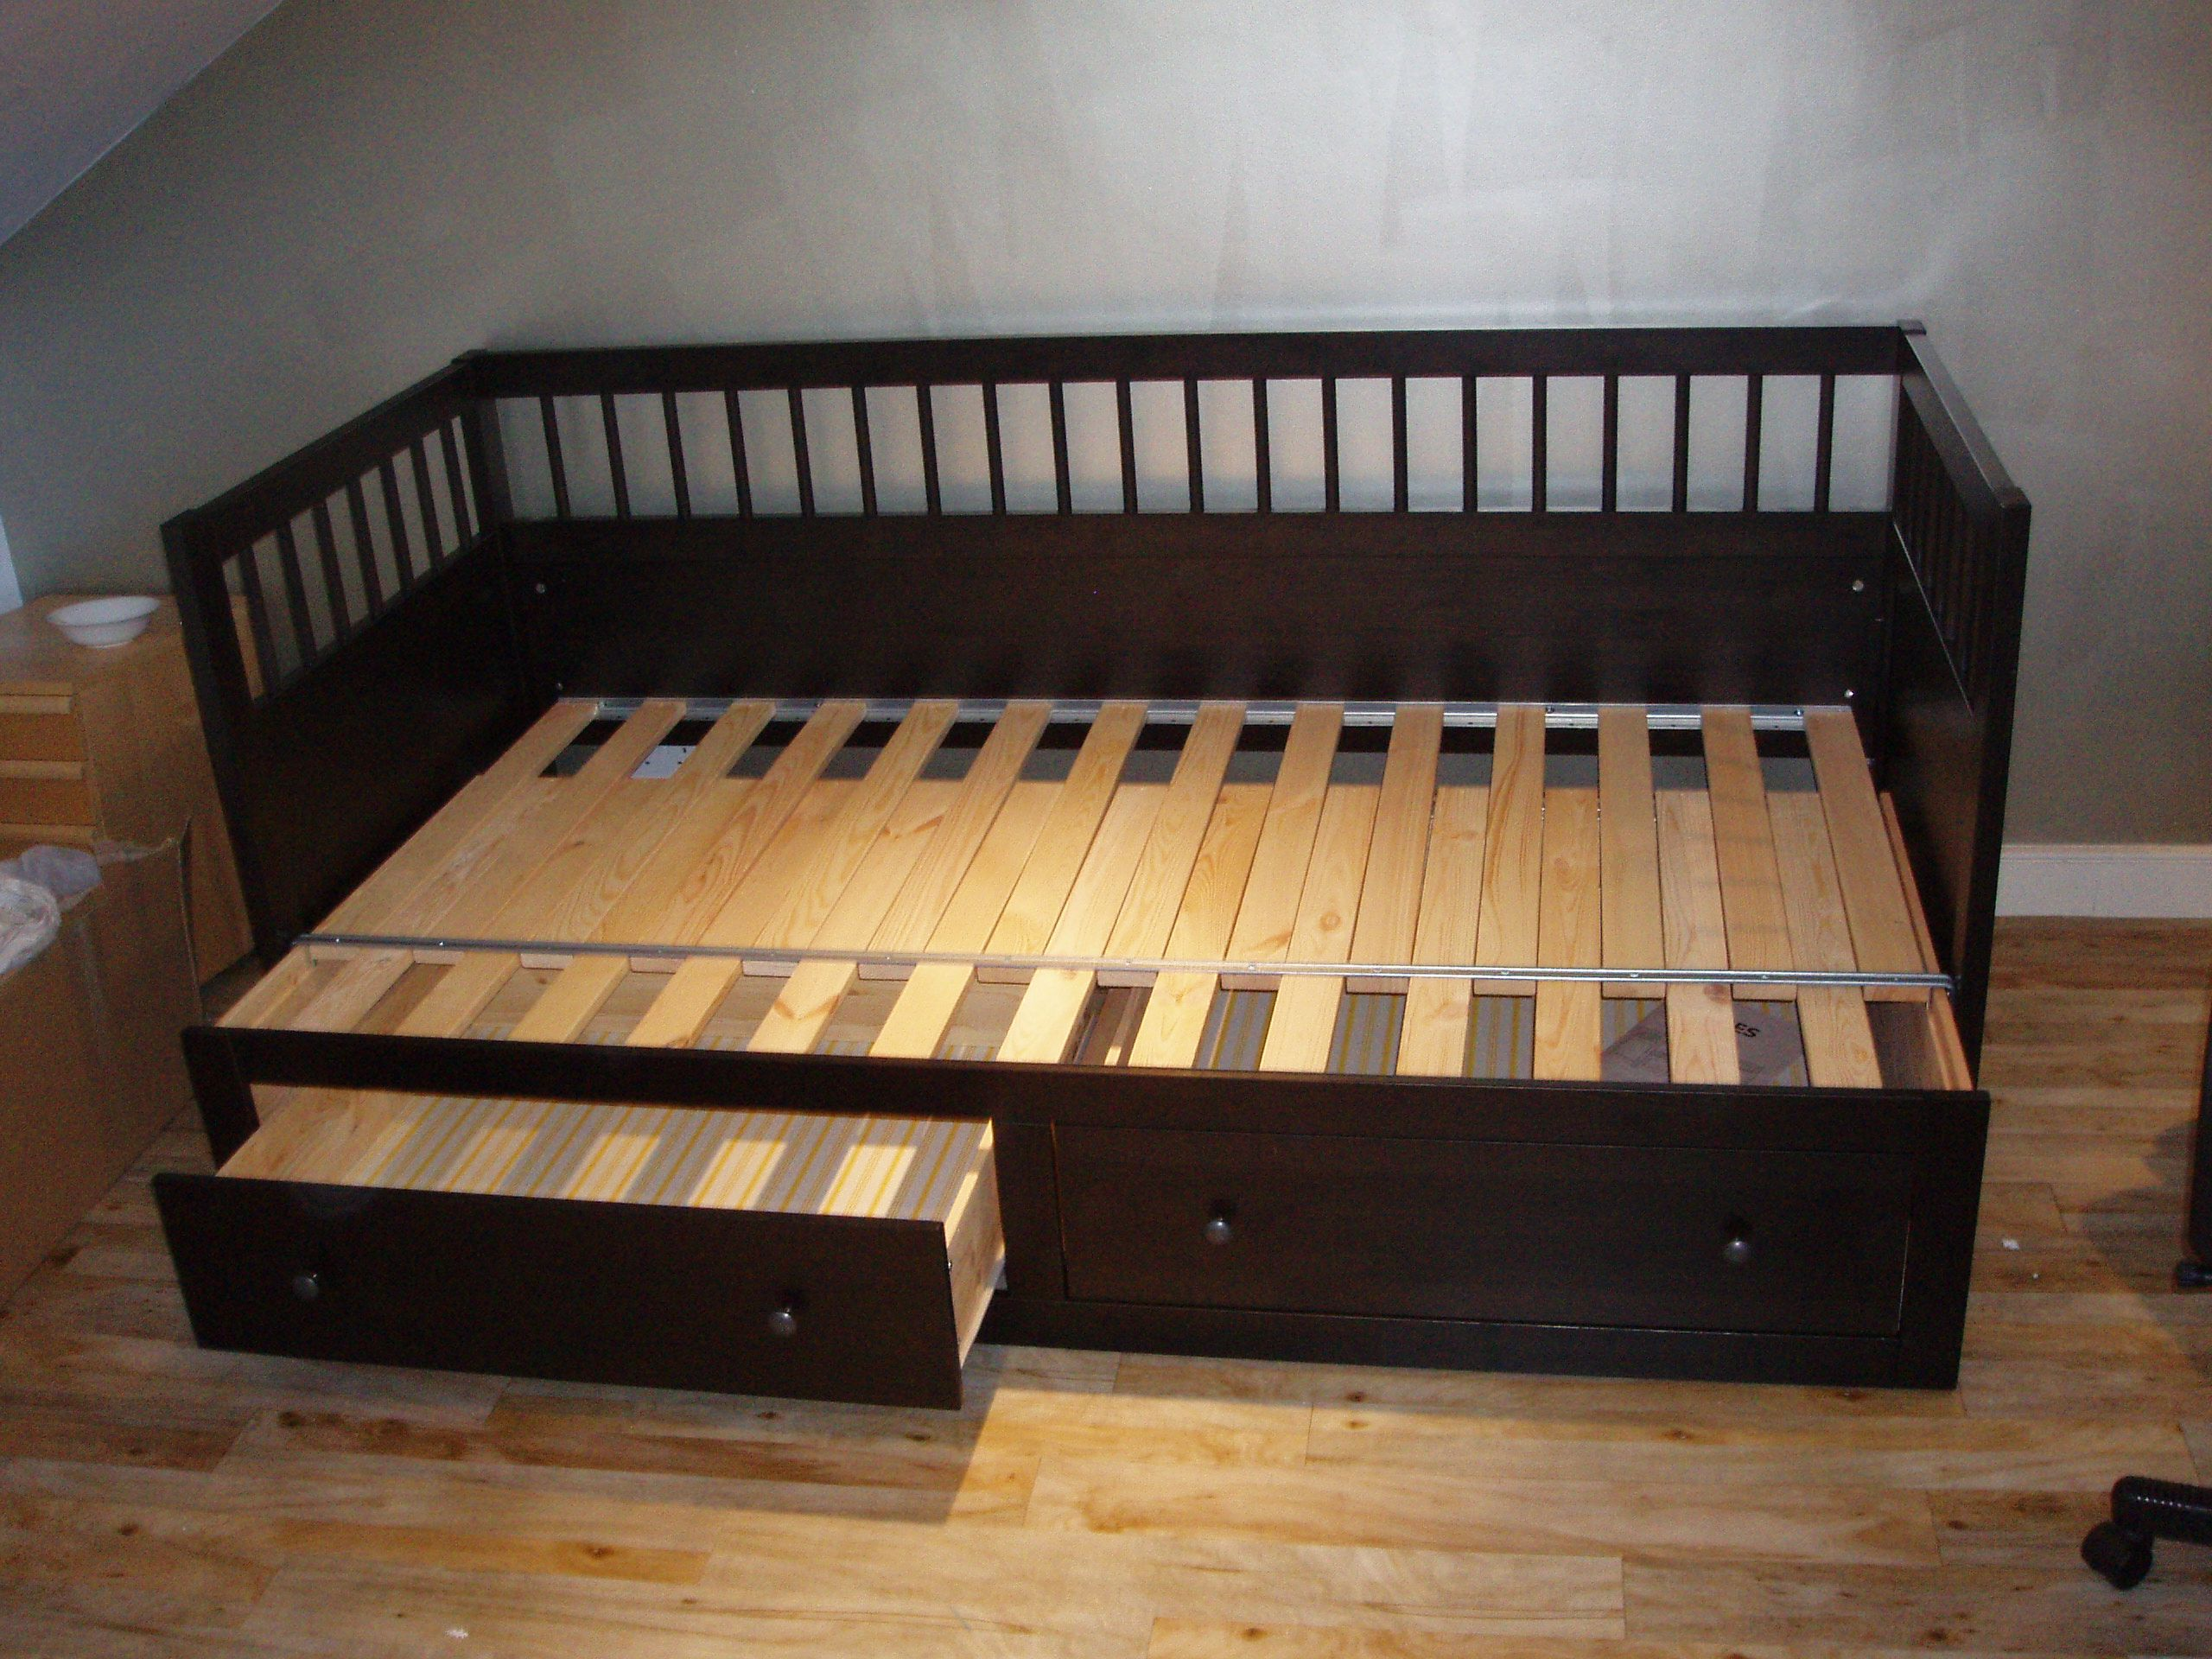 Hemnes bed unpacked Diy daybed, Futon sofa, Queen daybed